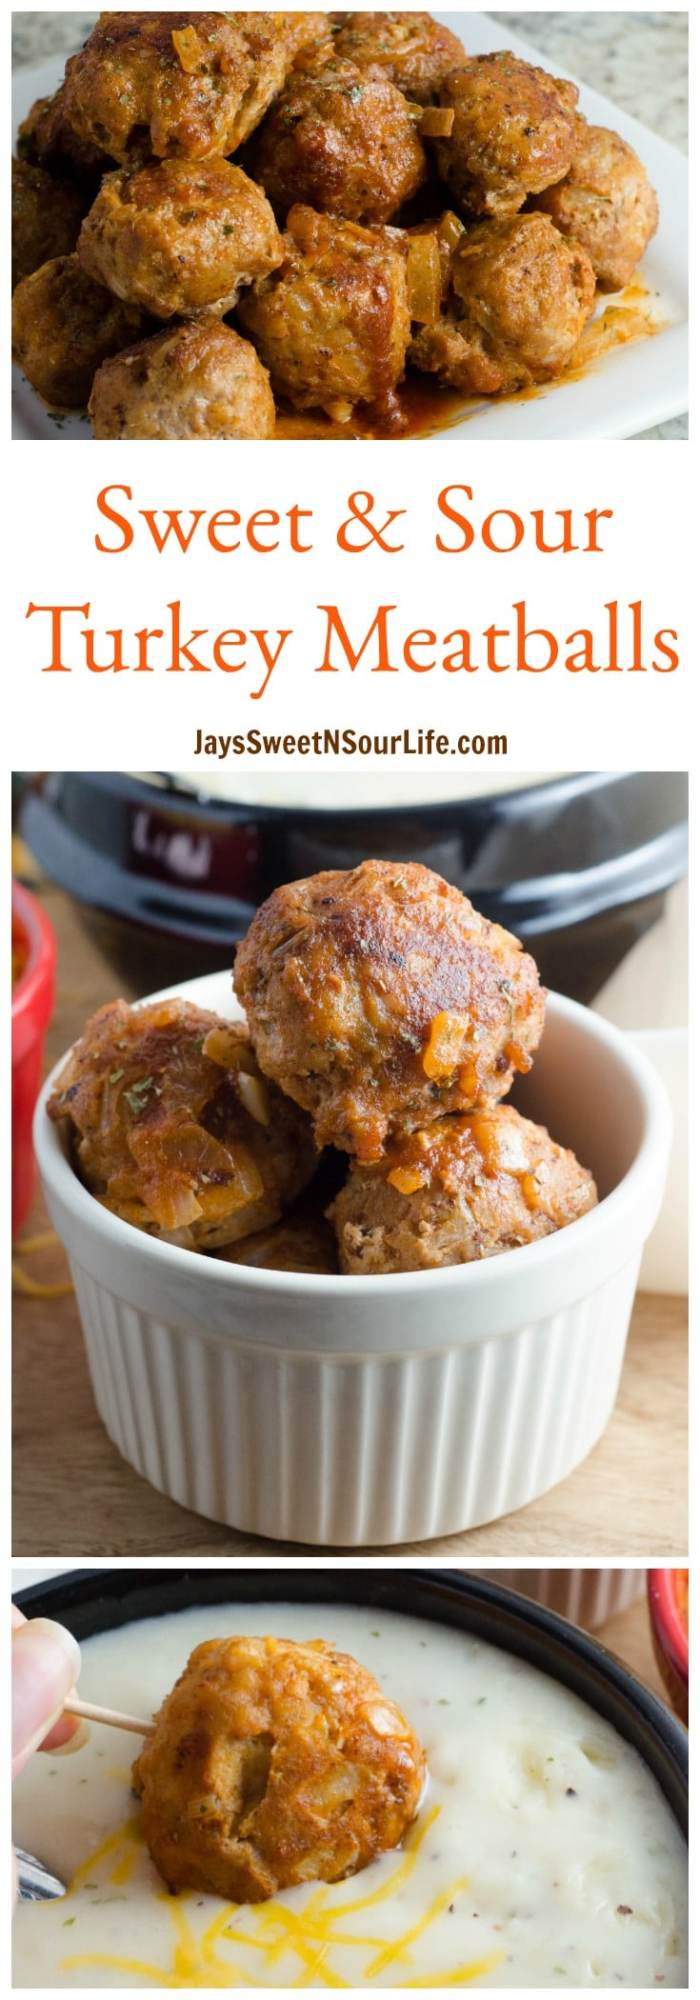 This sweet and sour turkey meatball is an easy 10 minute dinner option. Make ahead and freeze for future meals.